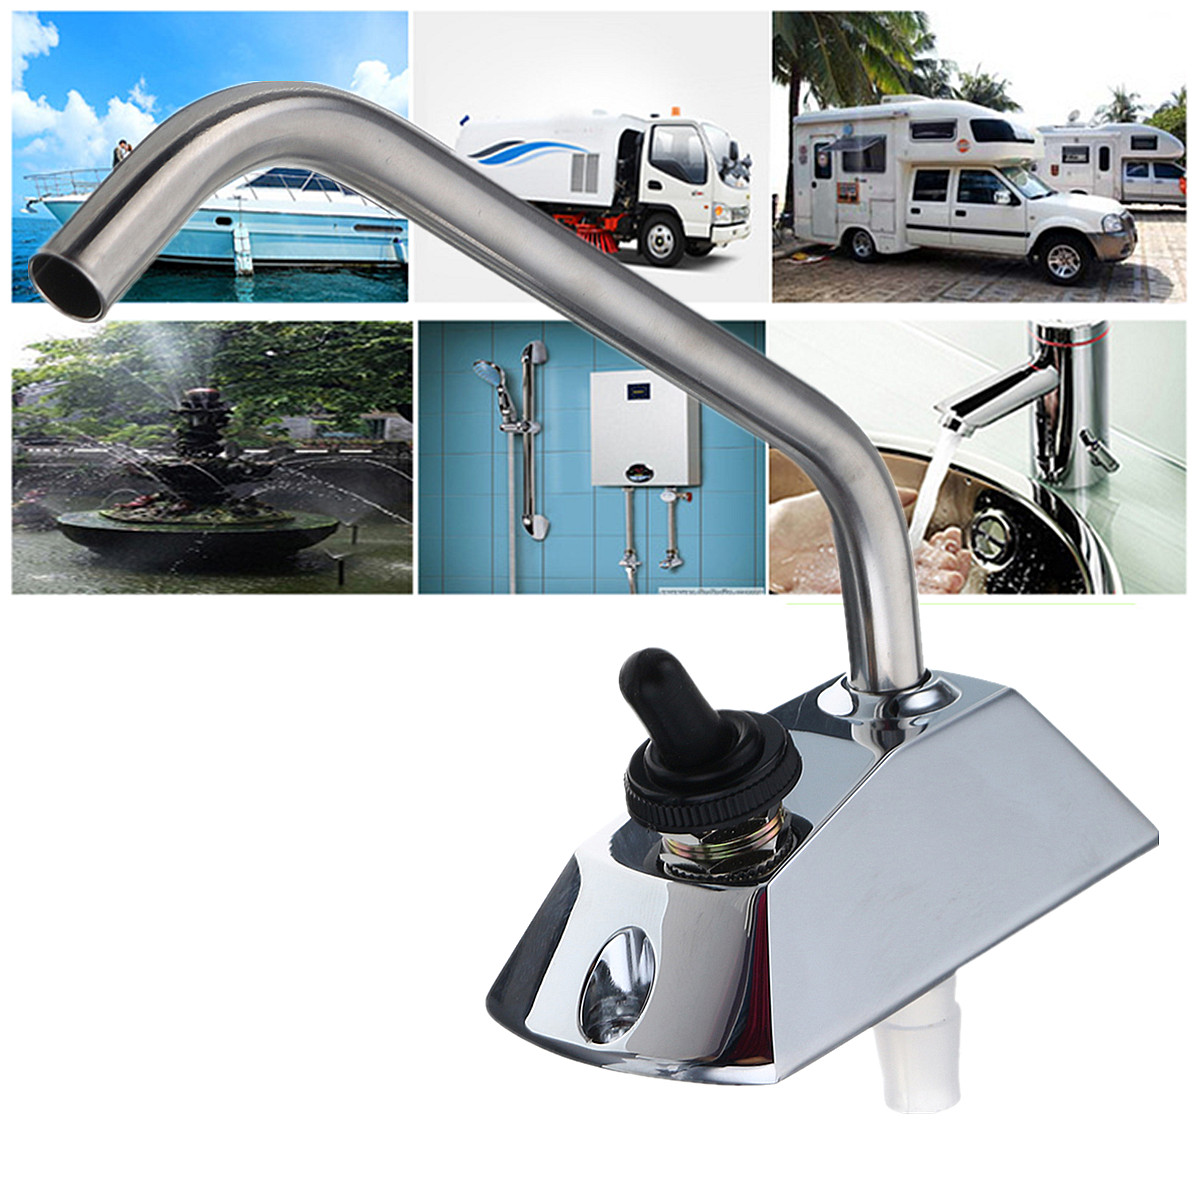 DC12V RV Water Pump Galley 360 Rotation Faucet Tap With Switch Kit For Caravan Boat Electric Water Pump High Pressure Pump